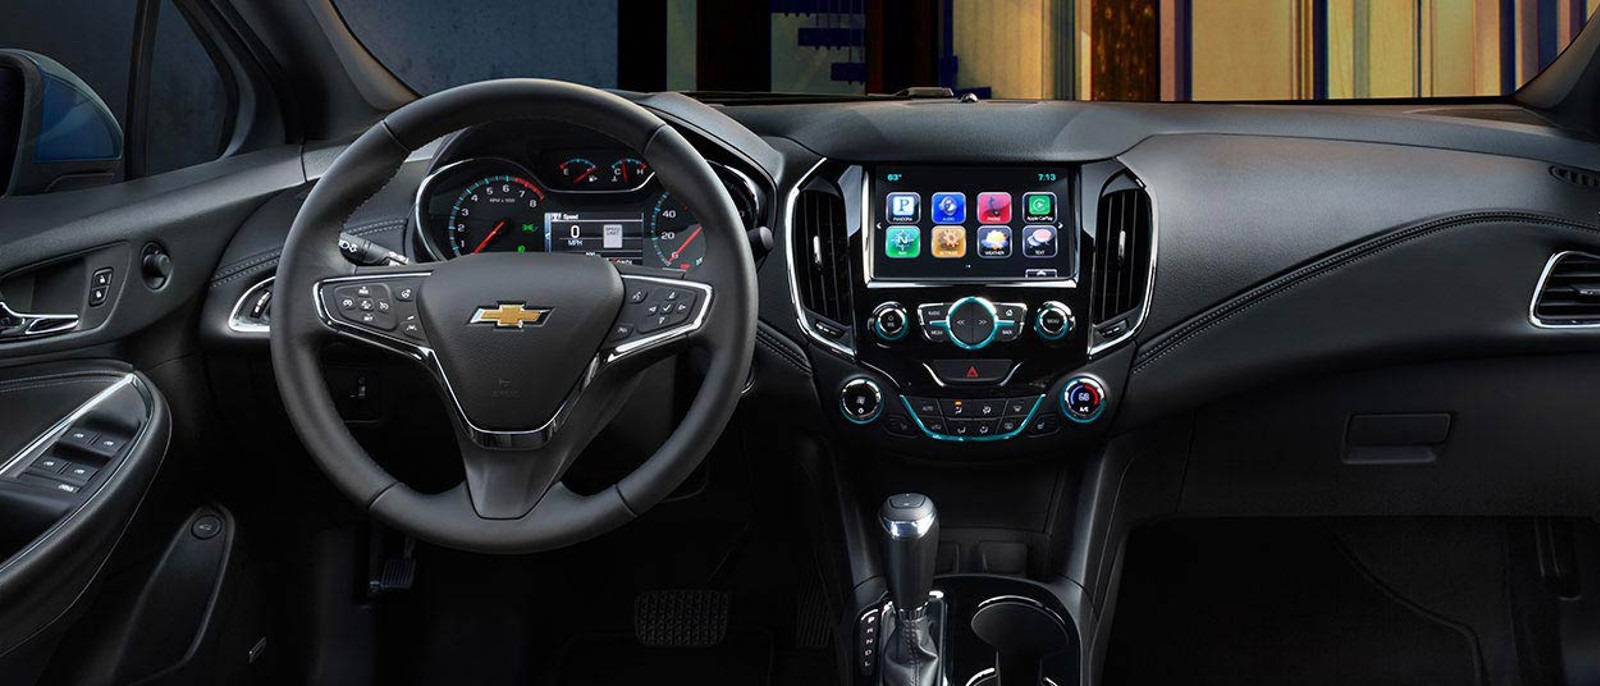 Is 2016 Chevy Cruze A Good Car Cars Image 2018